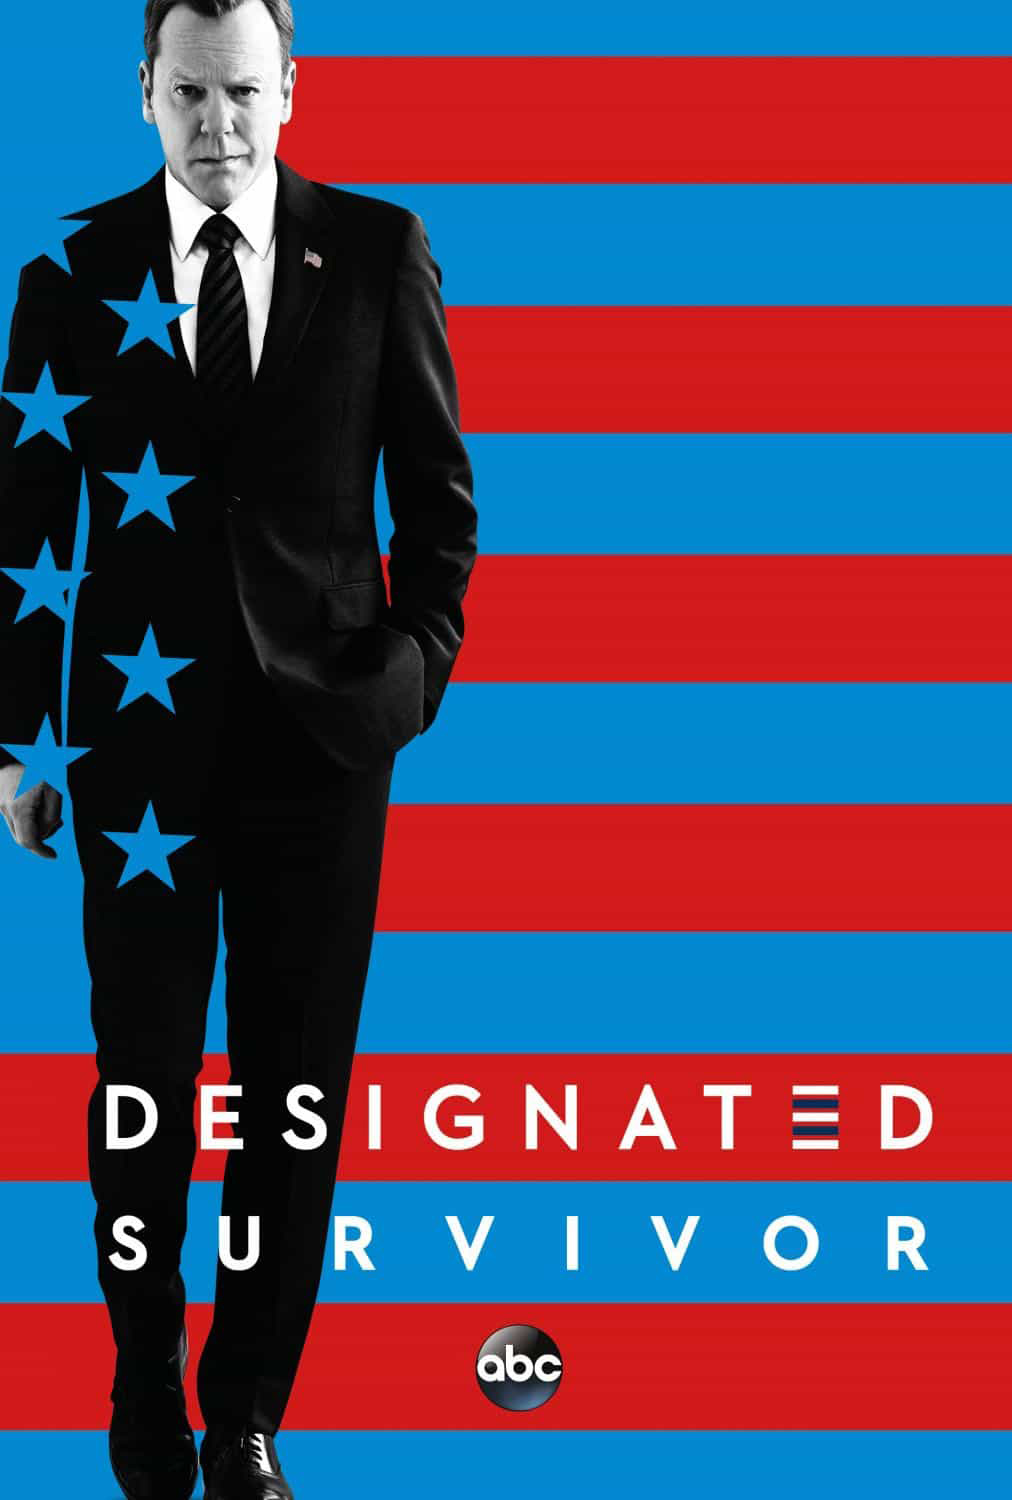 Official Season 2 Promotional Poster Of Designated